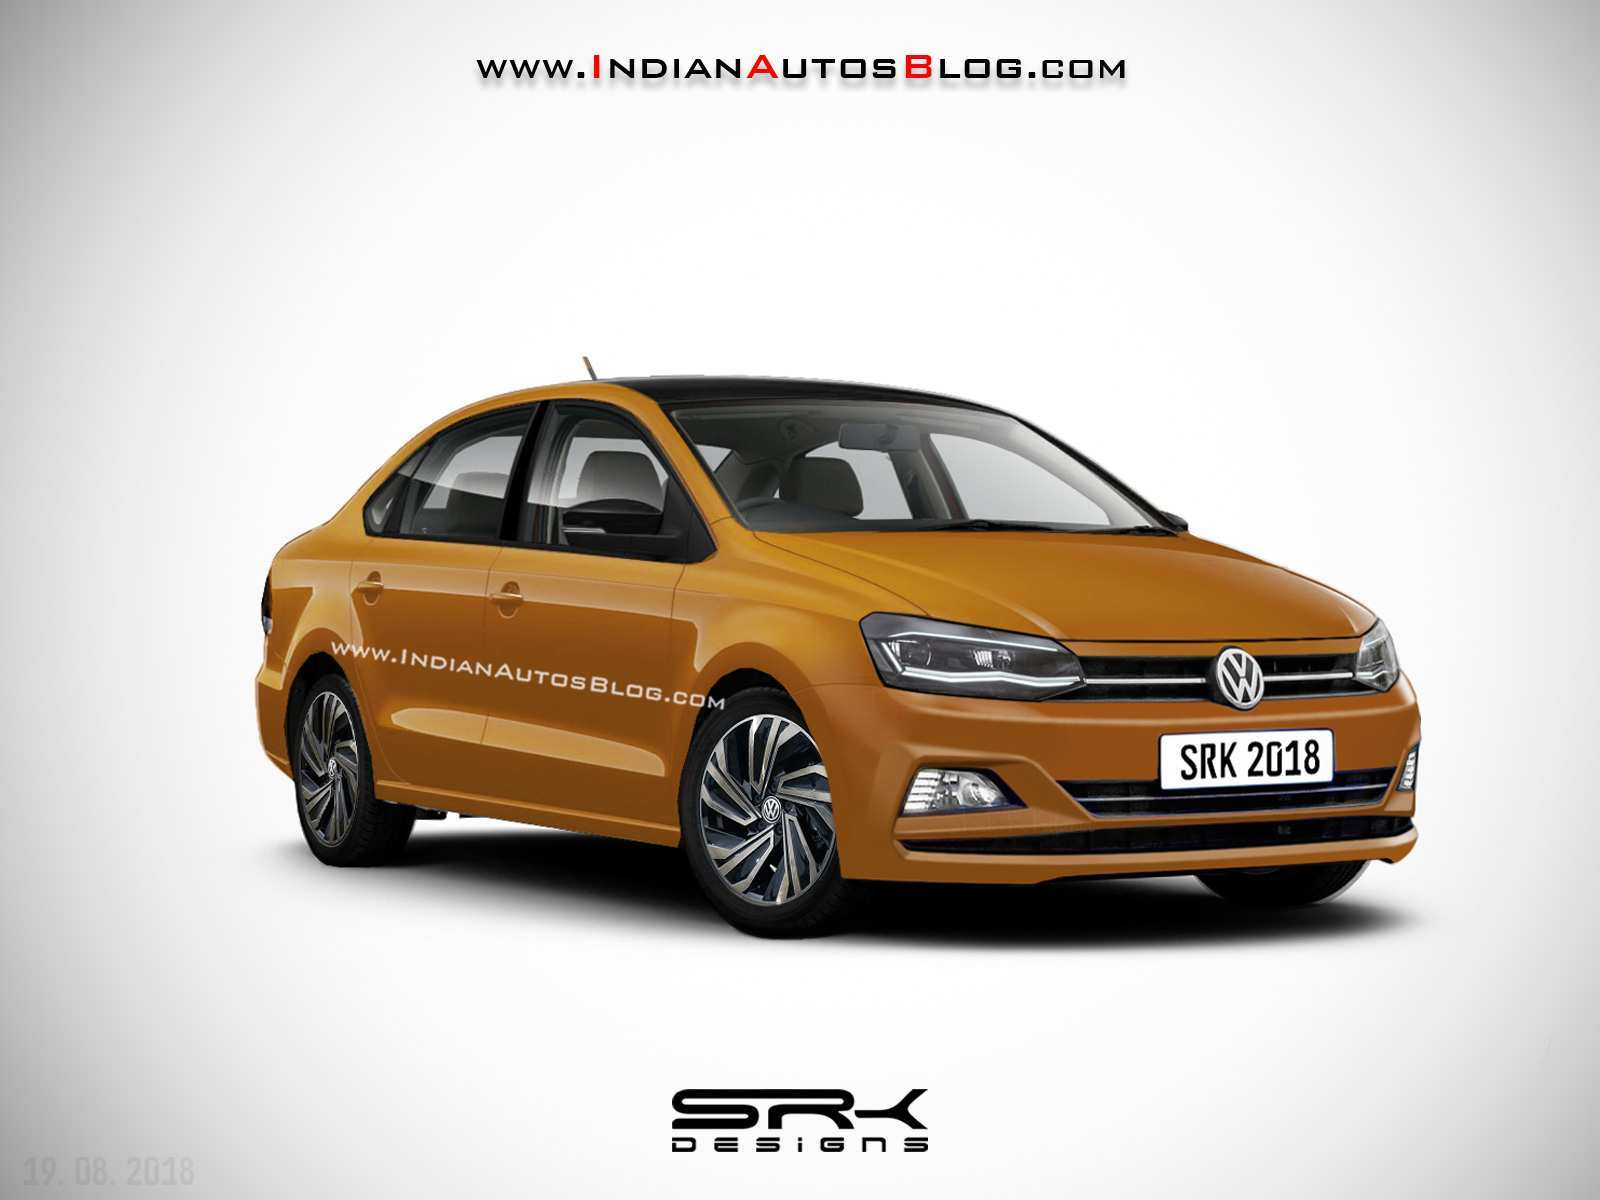 93 All New Volkswagen Vento 2020 India Price And Review